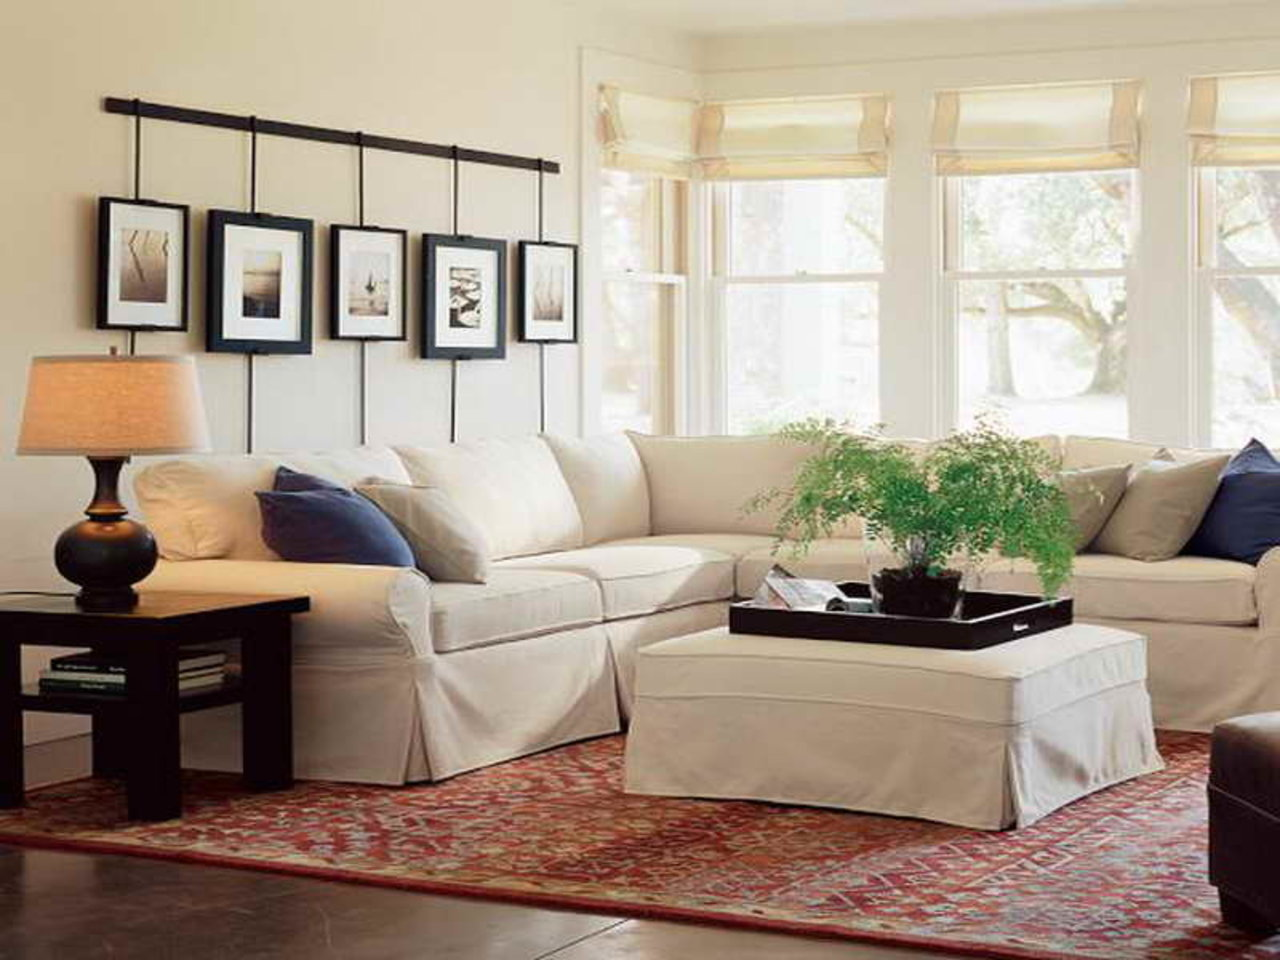 Amusing Design Of The White Sofa Added With Brown Wooden Floor And Brown Wooden Side Table As The Barn Living Room Ideas